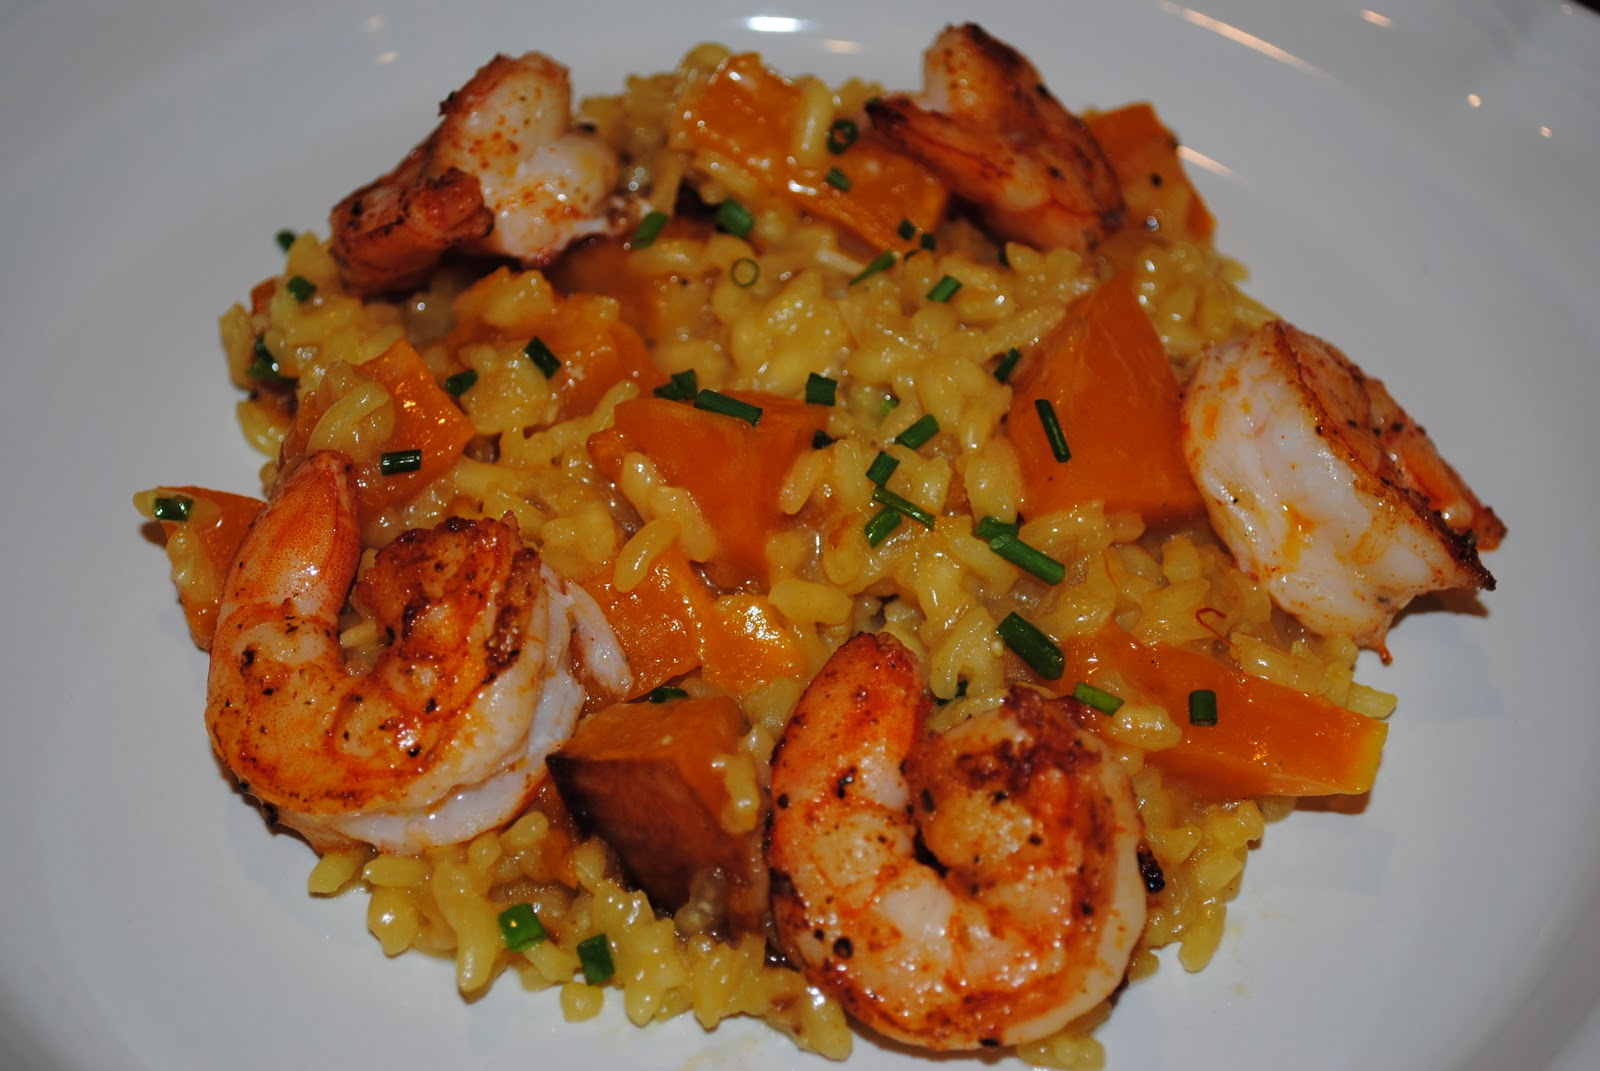 Date night butternut squash risotto with spicy shrimp for Spicy prawn risotto